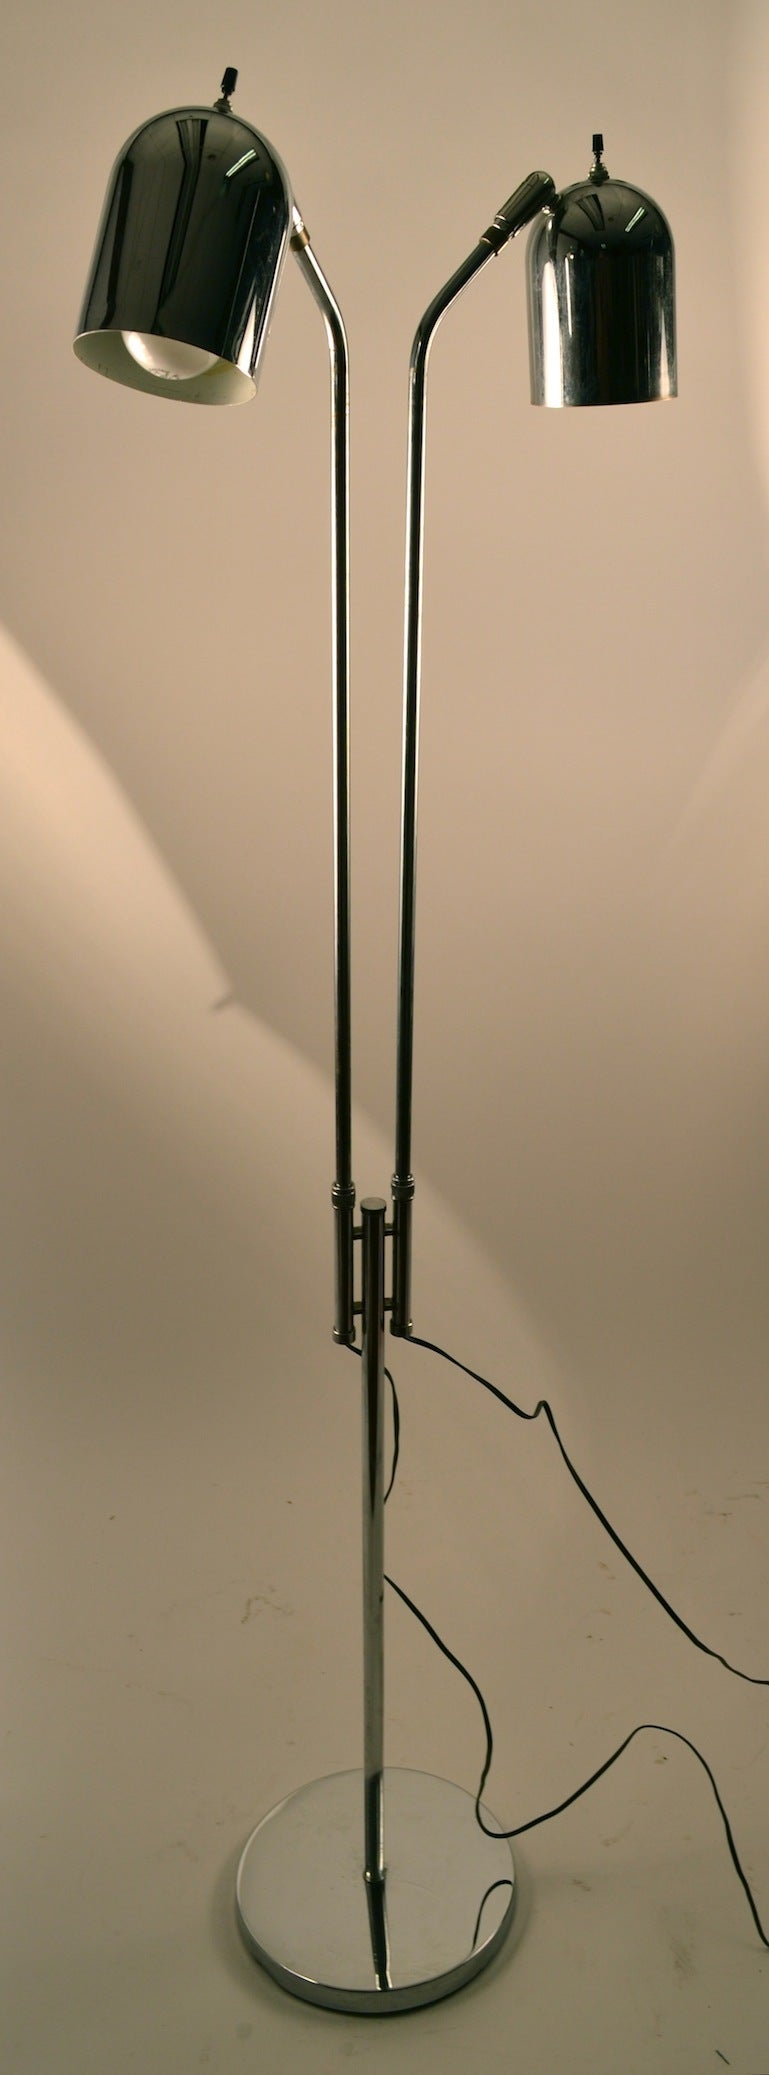 Adjustable Chrome Two Light Floor Lamp In Good Condition For Sale In New York, NY